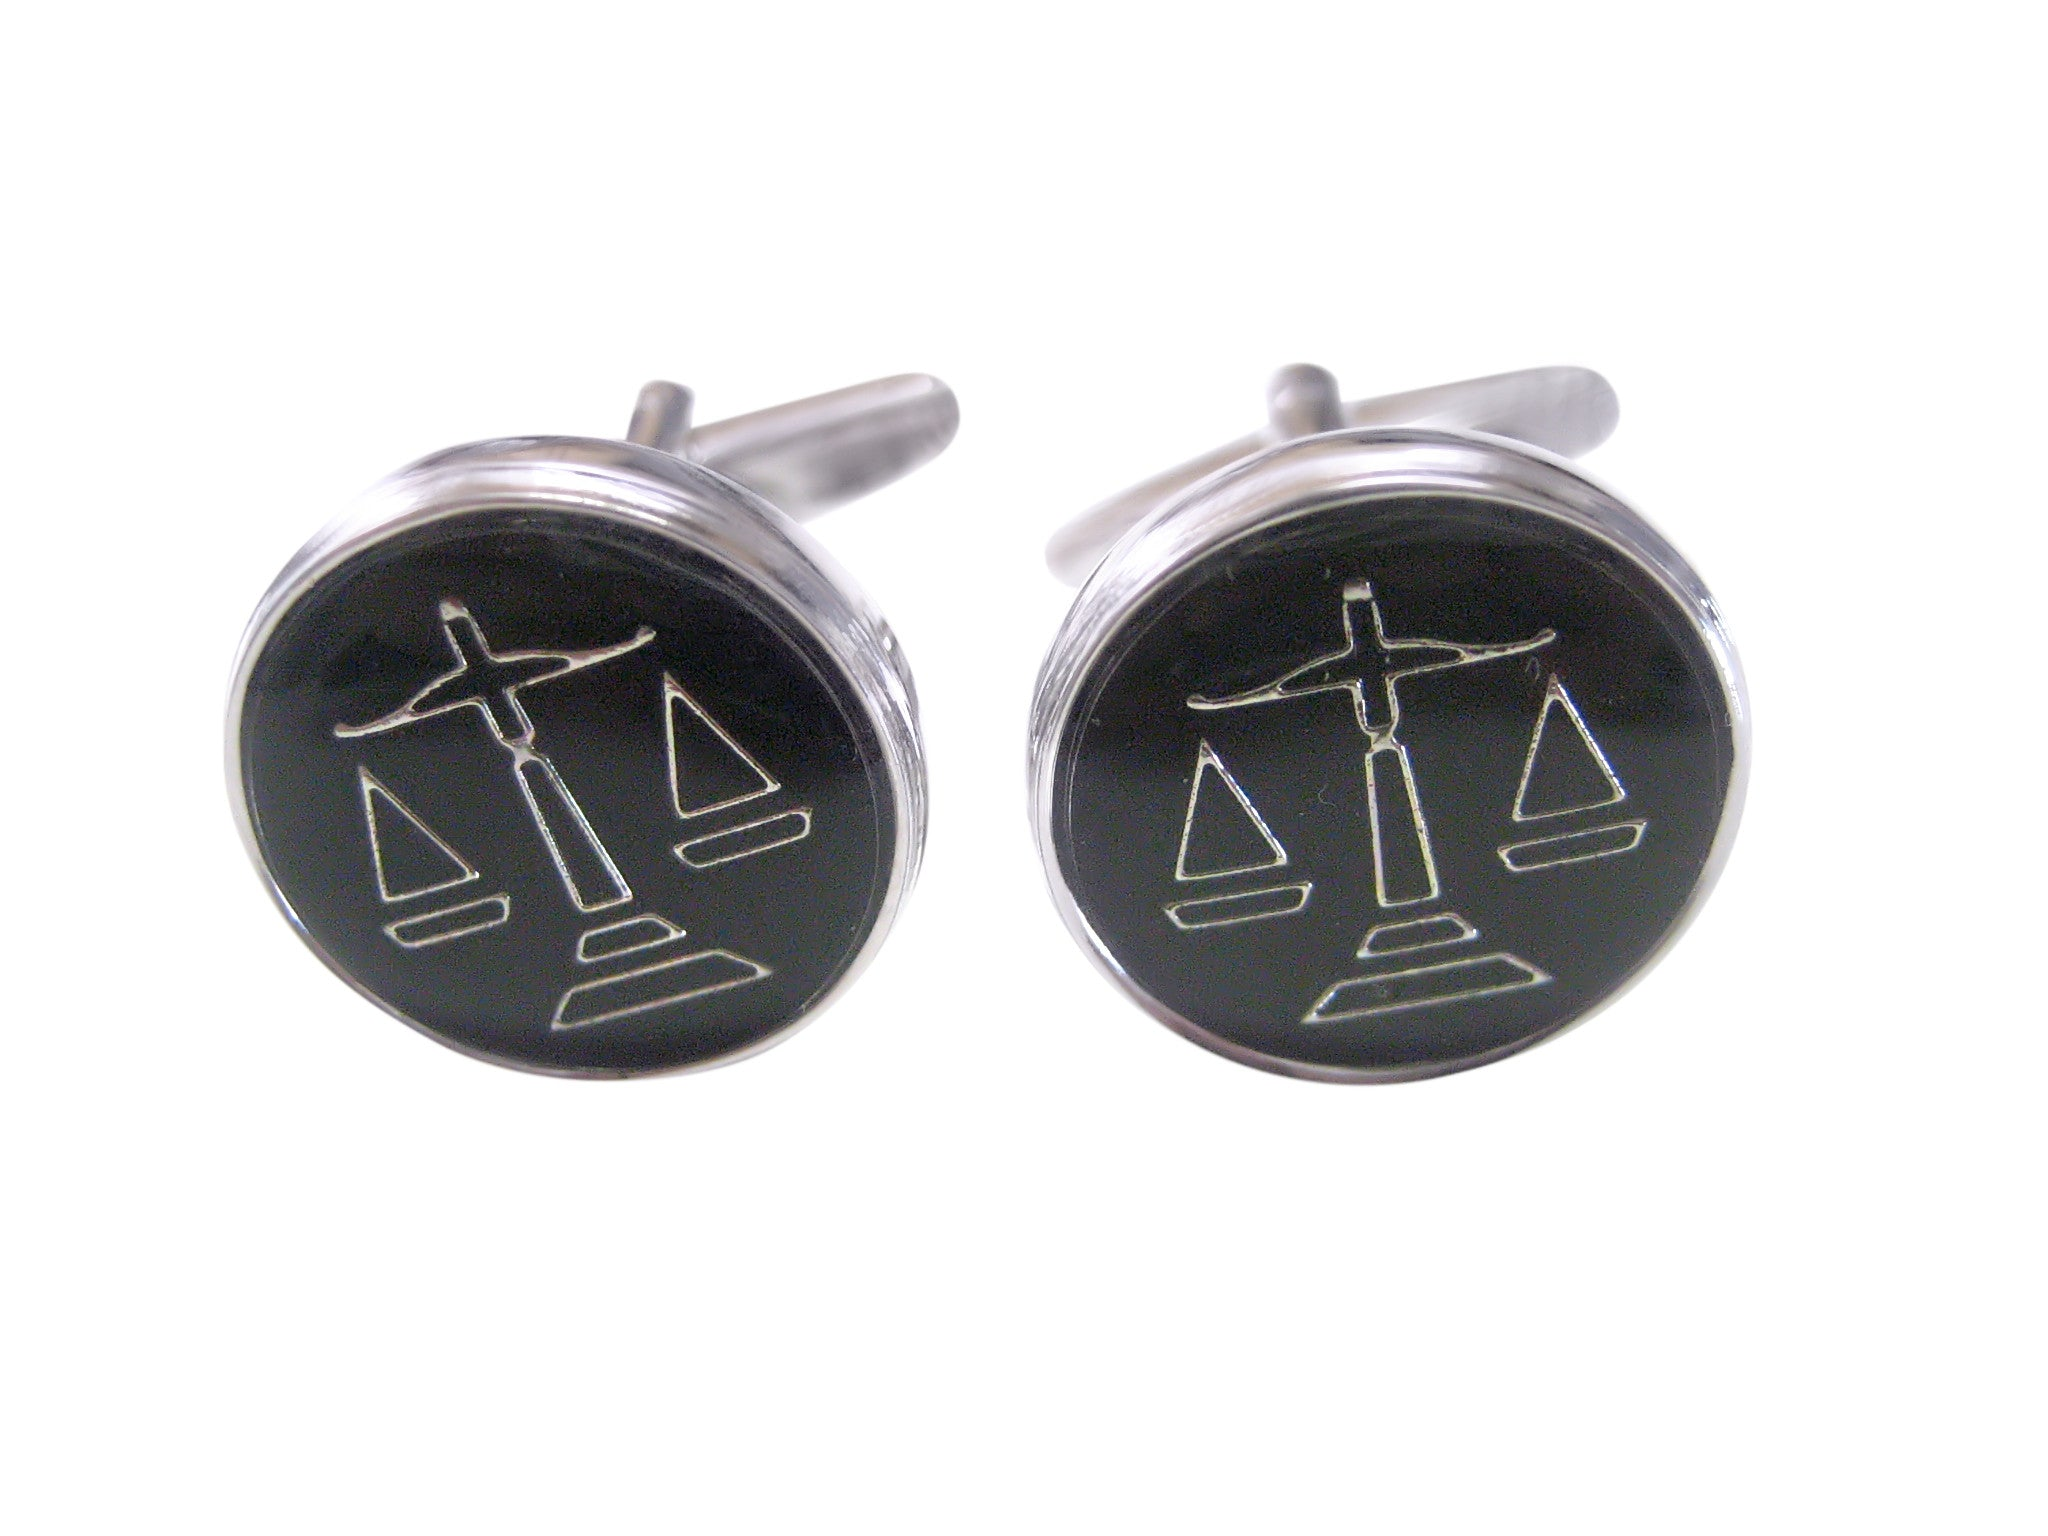 Black Scale of Justice Cufflinks